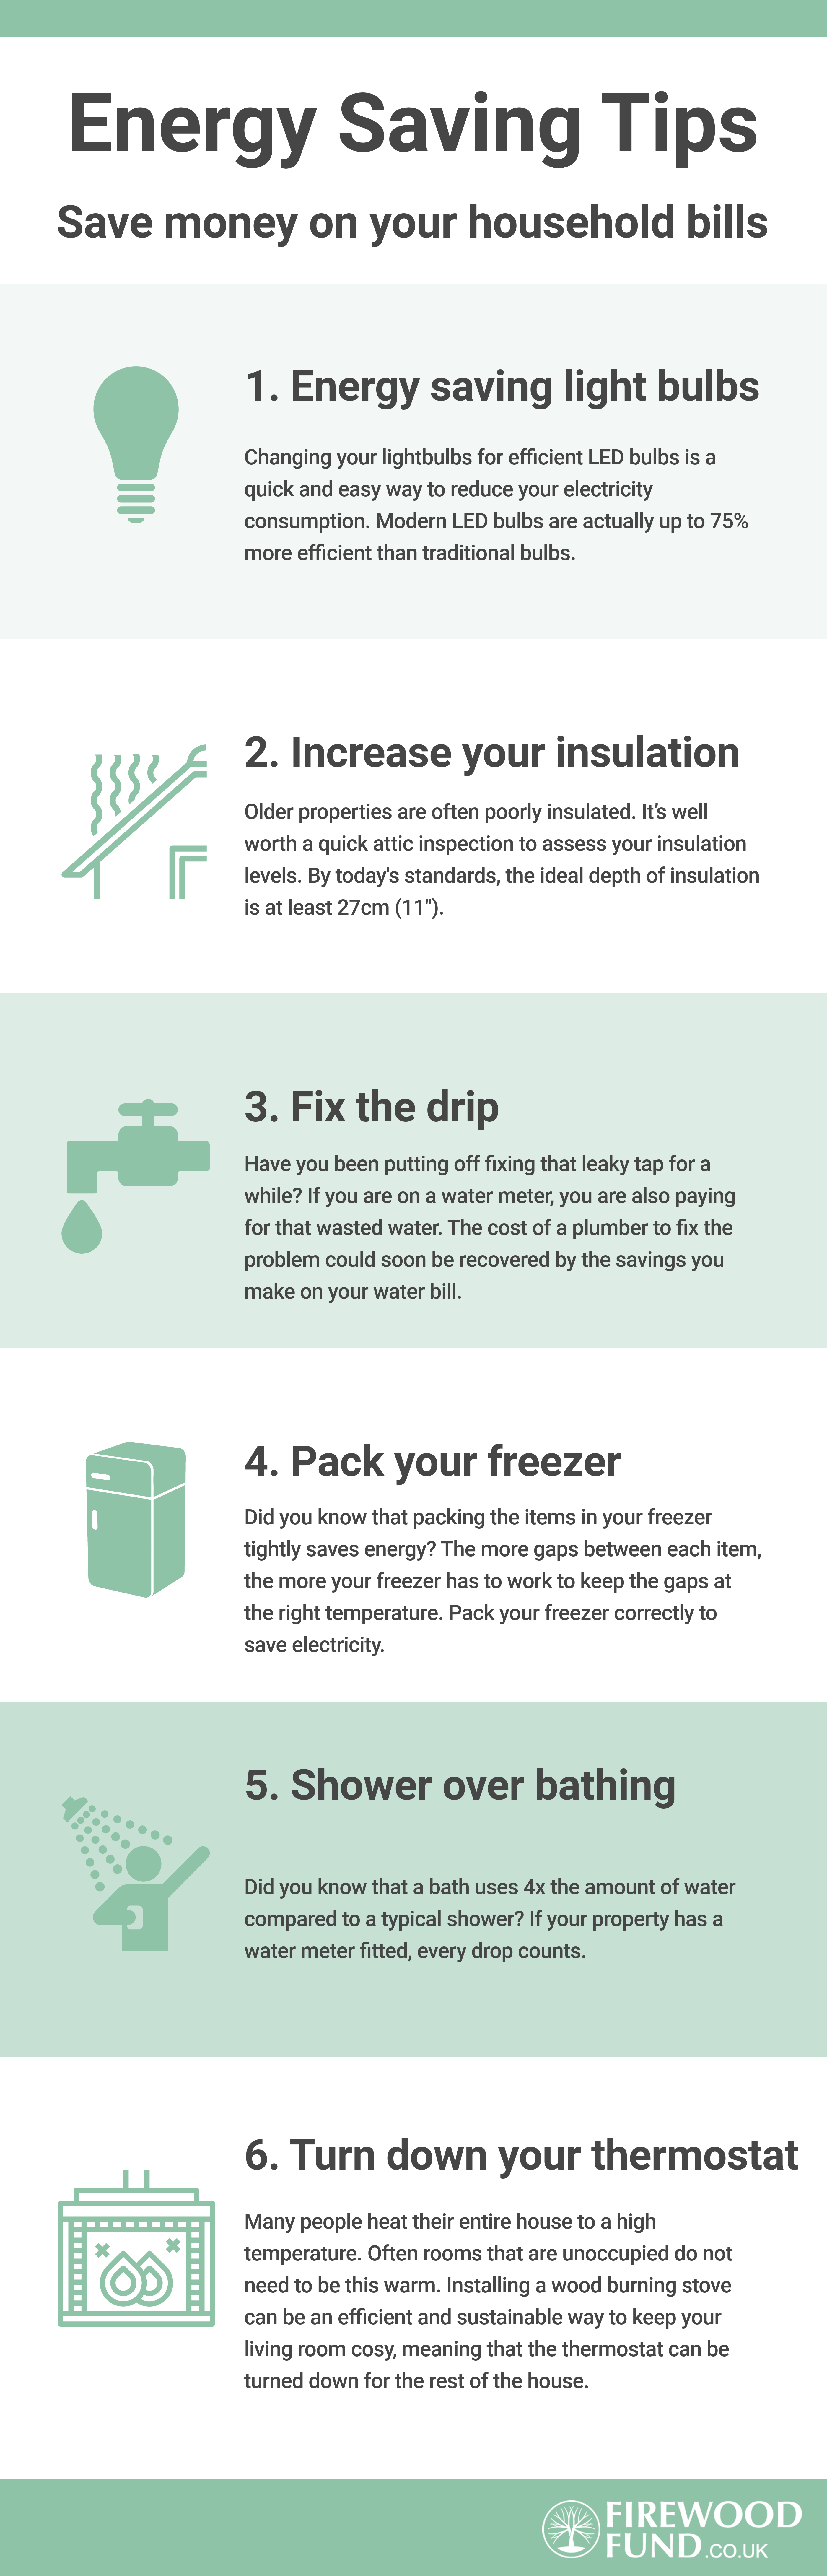 How to Save Energy Costs and Lower your Household Utility Bills - Infographic